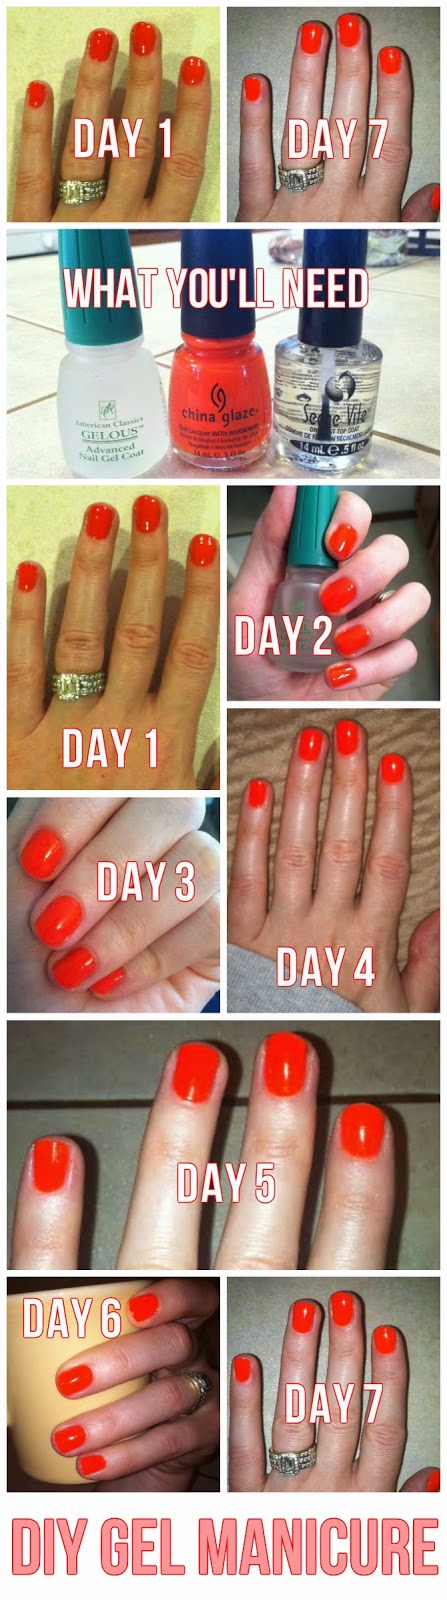 DIY Gel Manicure with NO Lamp! | Let